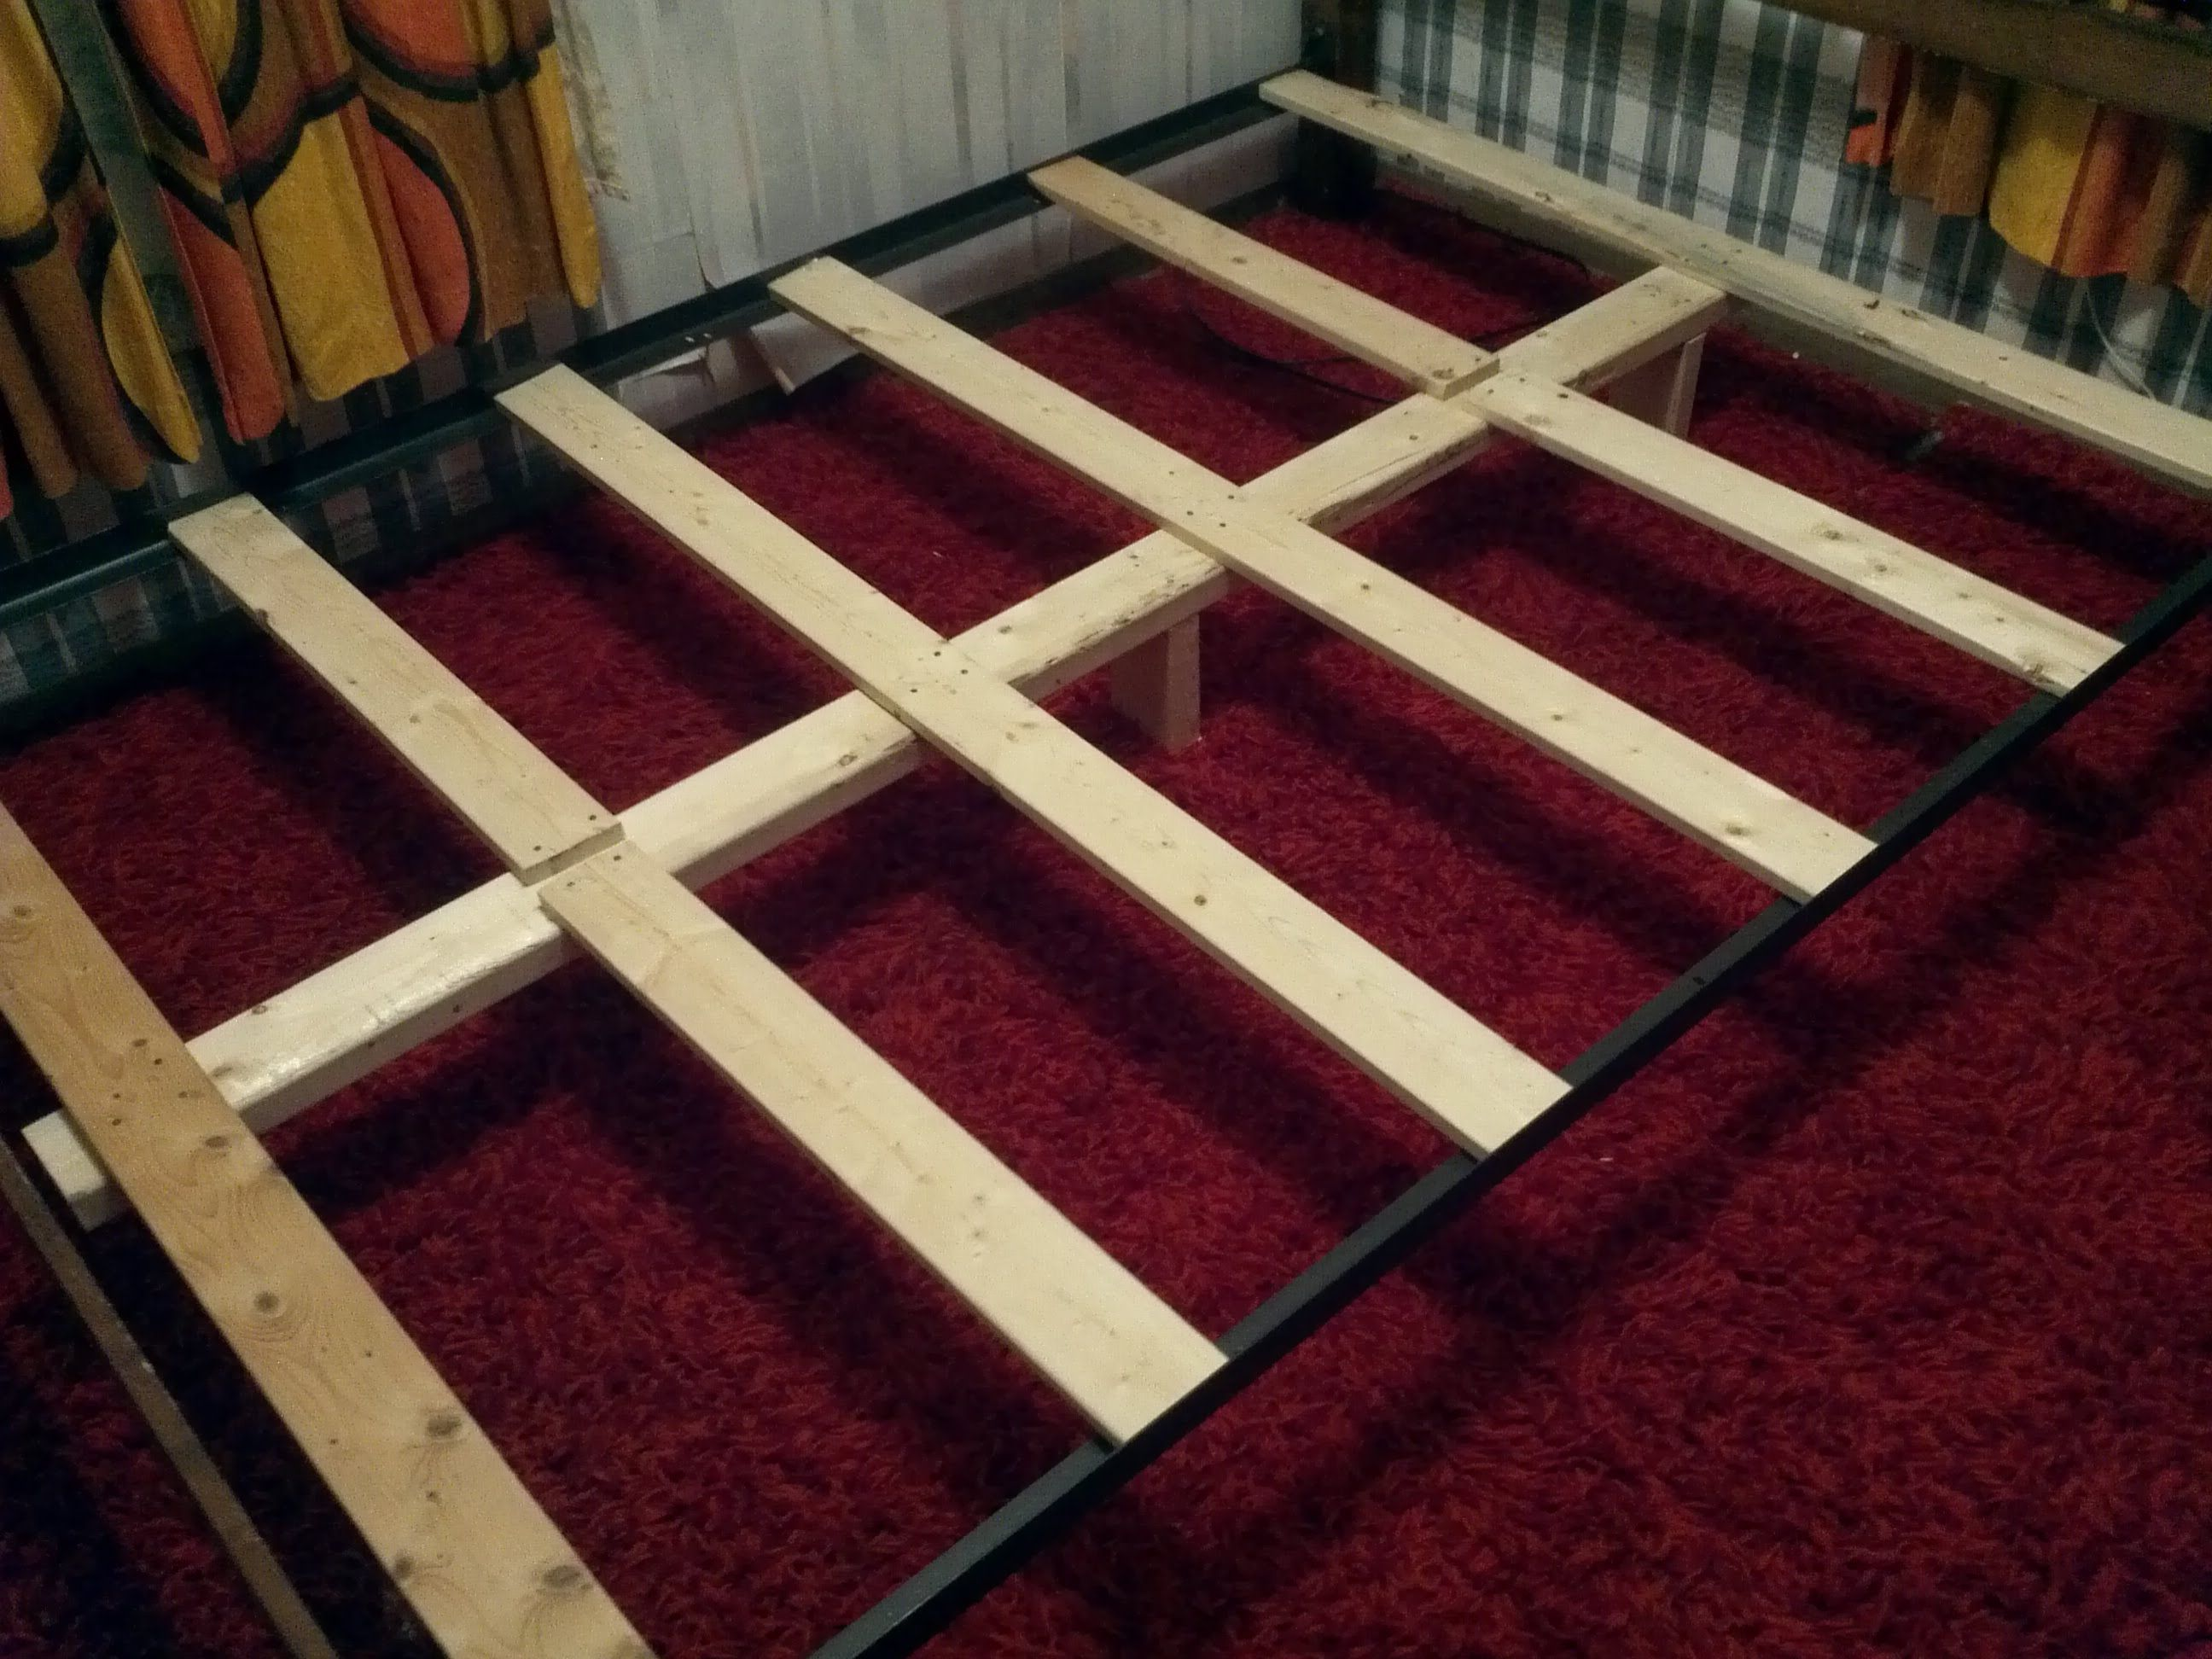 How To Support A Mattress Without Box Spring Build Diy Bed Frame For